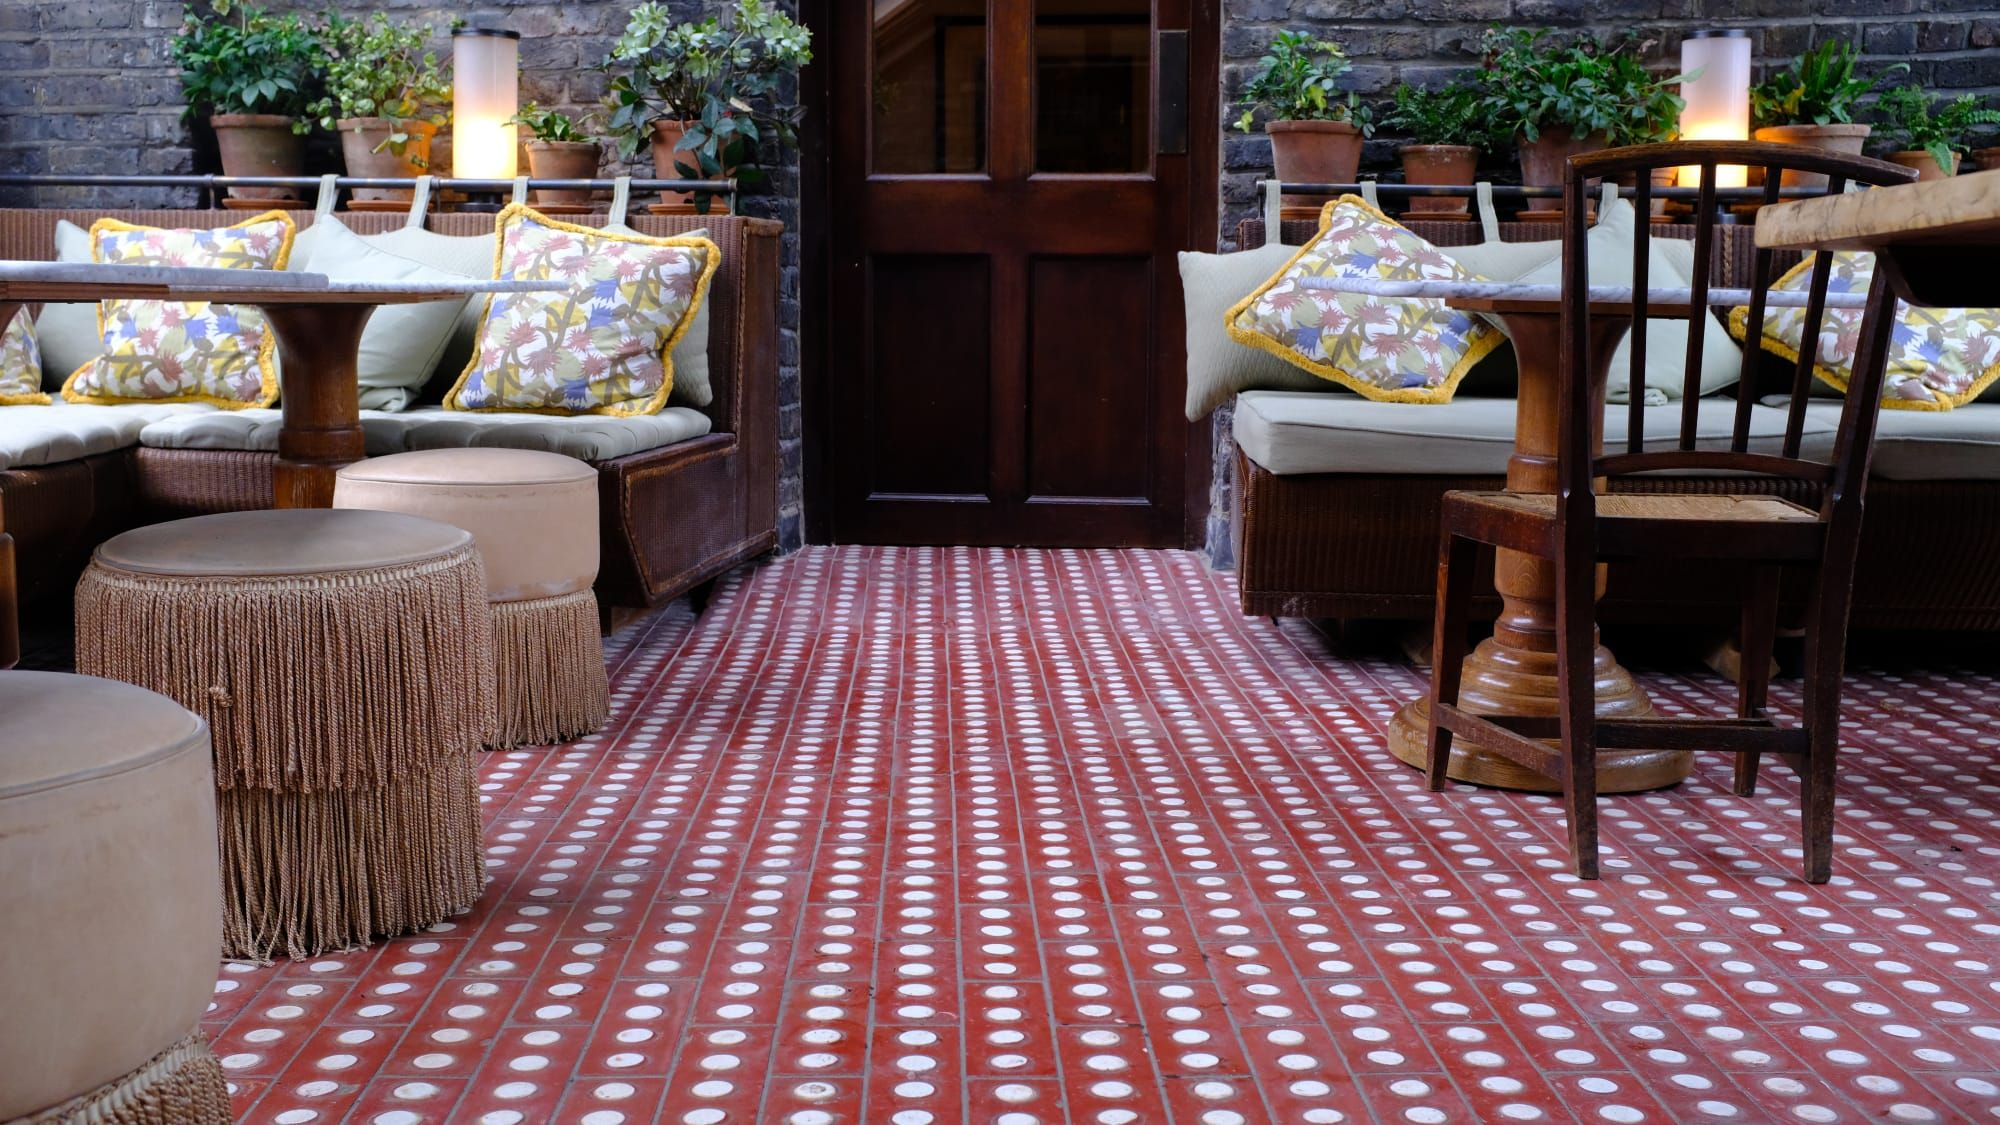 Hand Made Cement Tiles For Outside Patio By Otto Tiles And Design At Soho  House 40 Greek Street